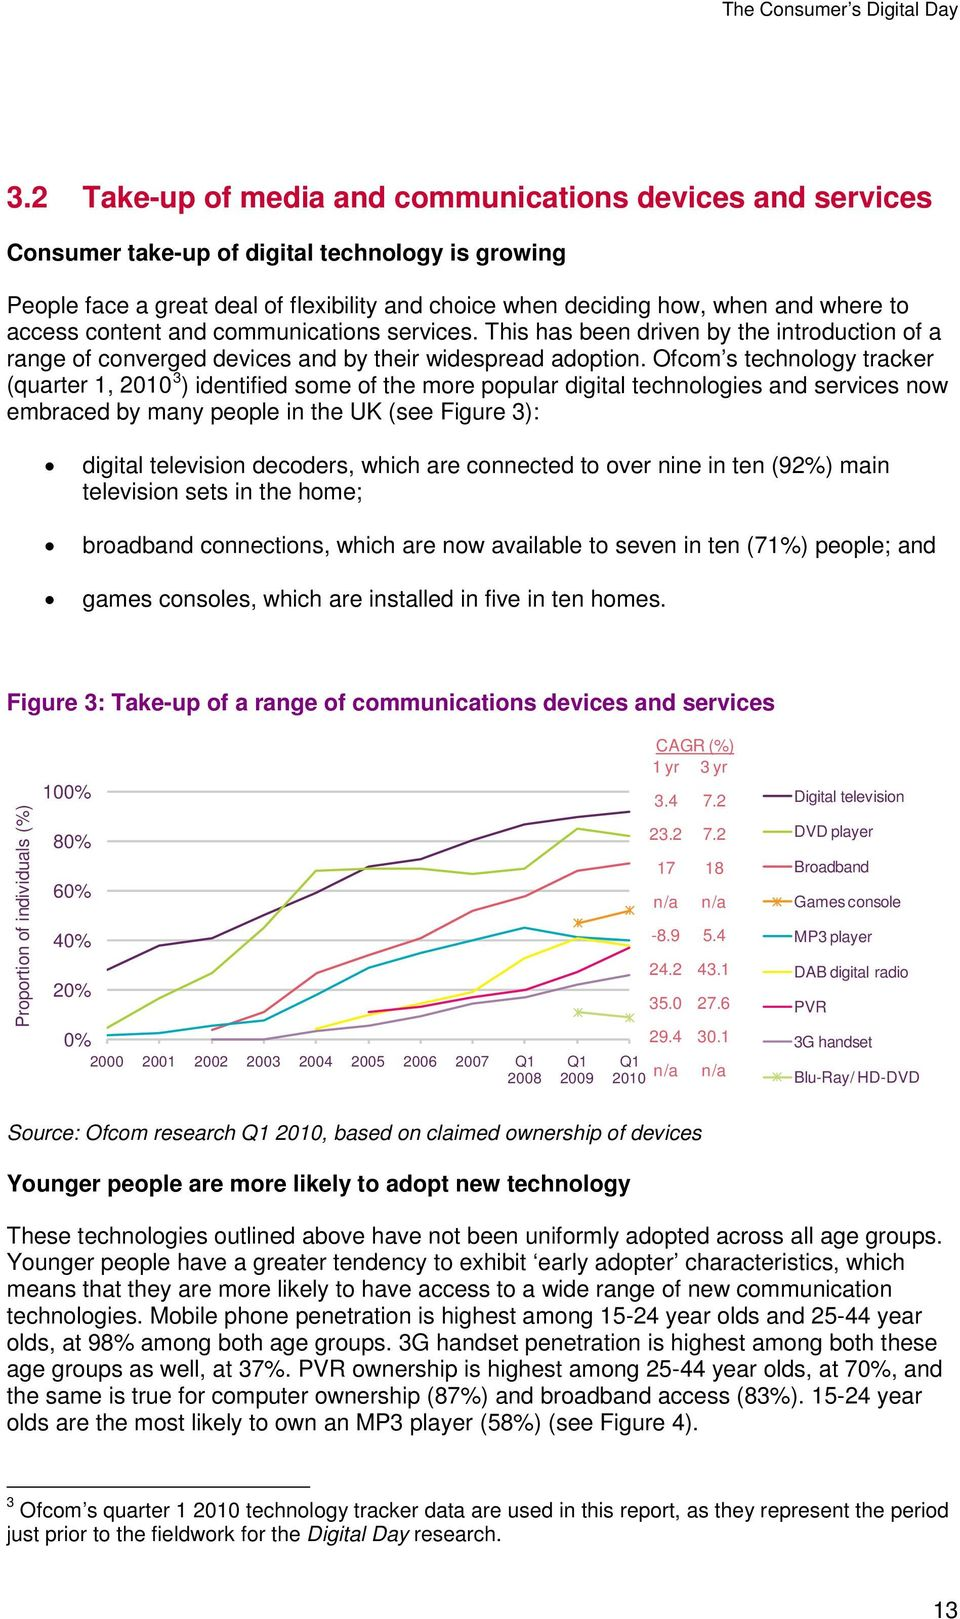 Ofcom s technology tracker (quarter 1, 2010 3 ) identified some of the more popular digital technologies and services now embraced by many people in the UK (see Figure 3): digital television